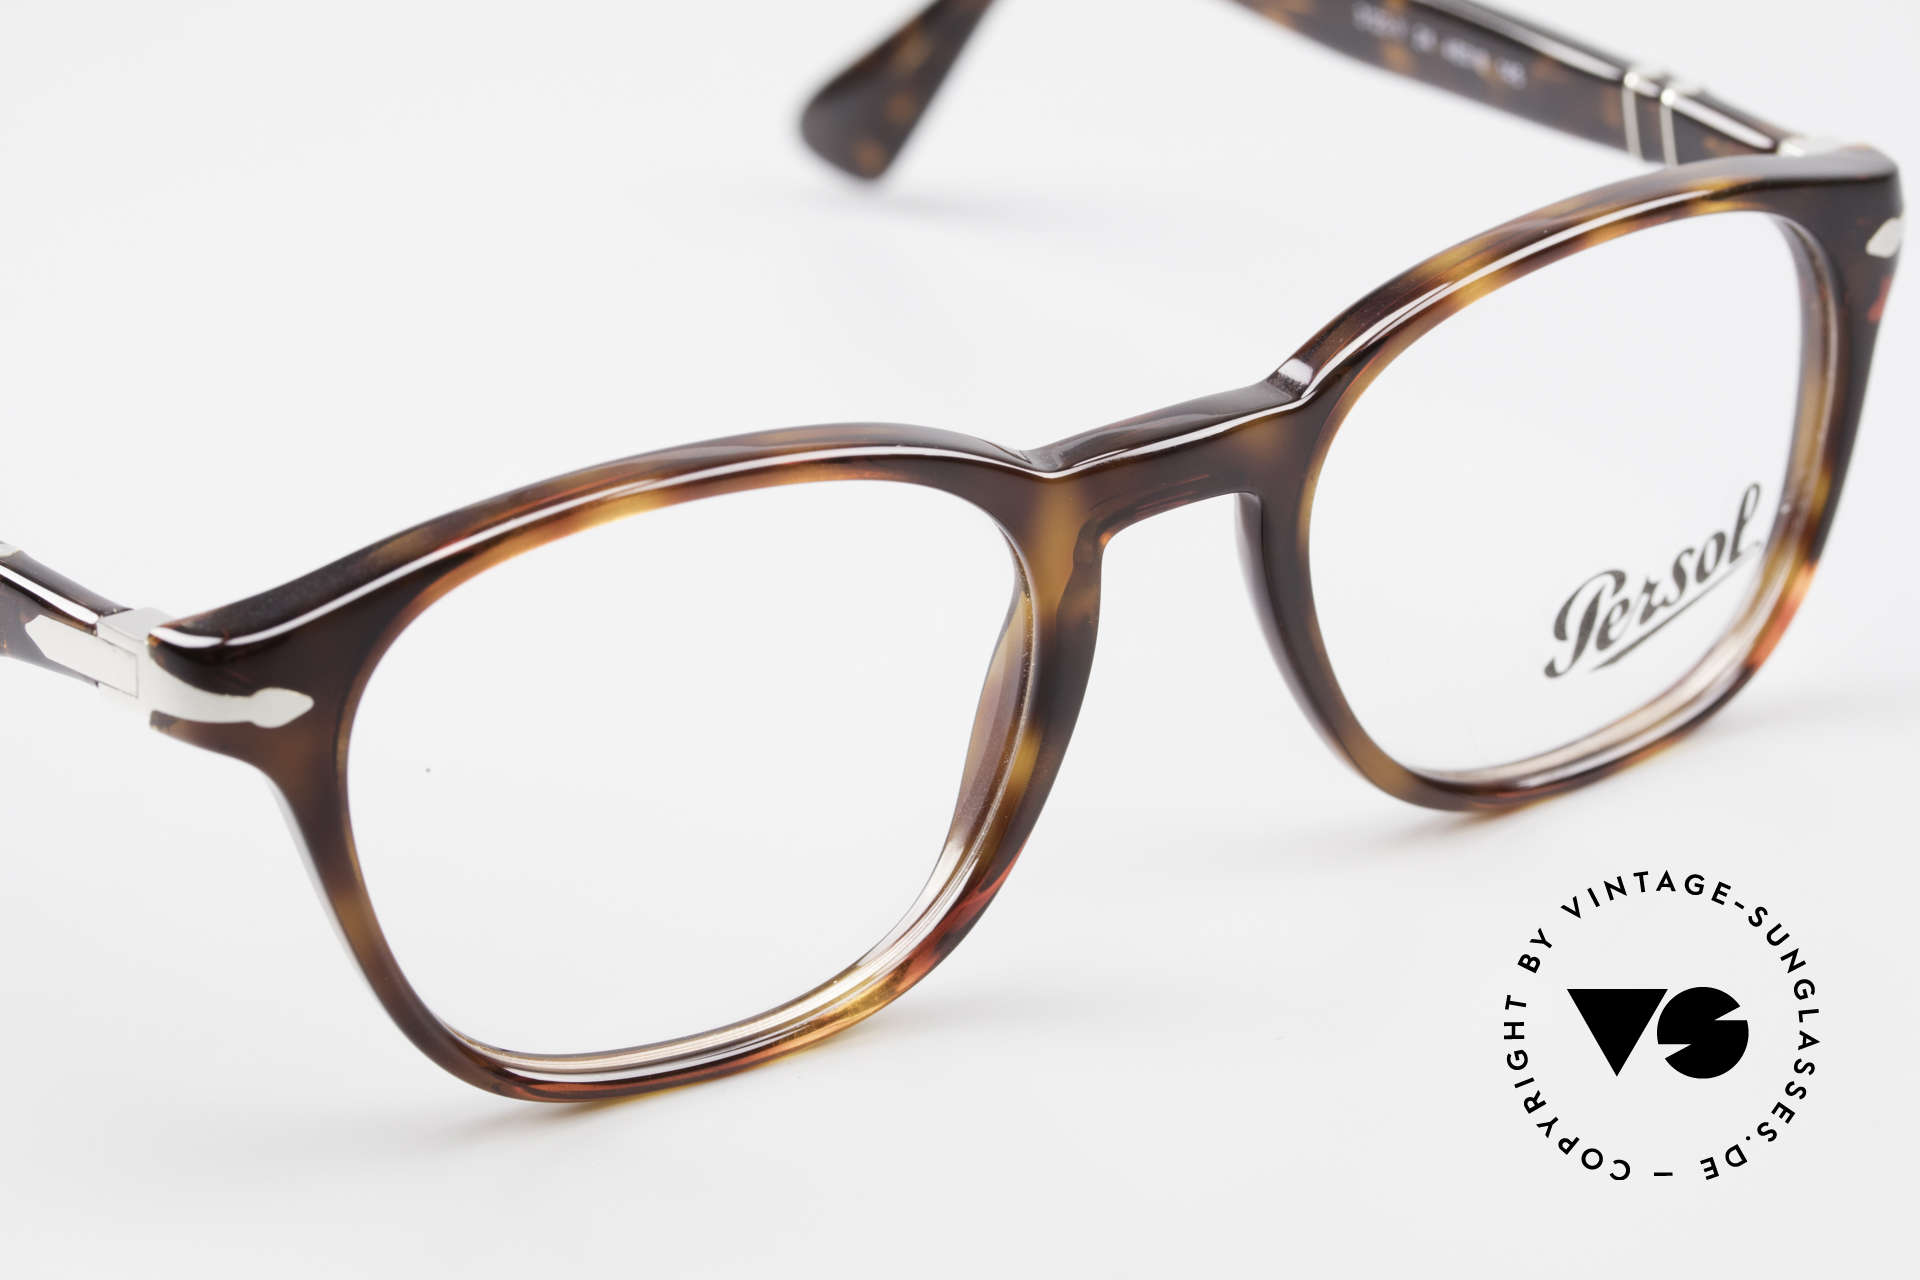 Persol 3122 Classic Square Panto Glasses, unisex model = suitable for ladies & gentlemen, Made for Men and Women